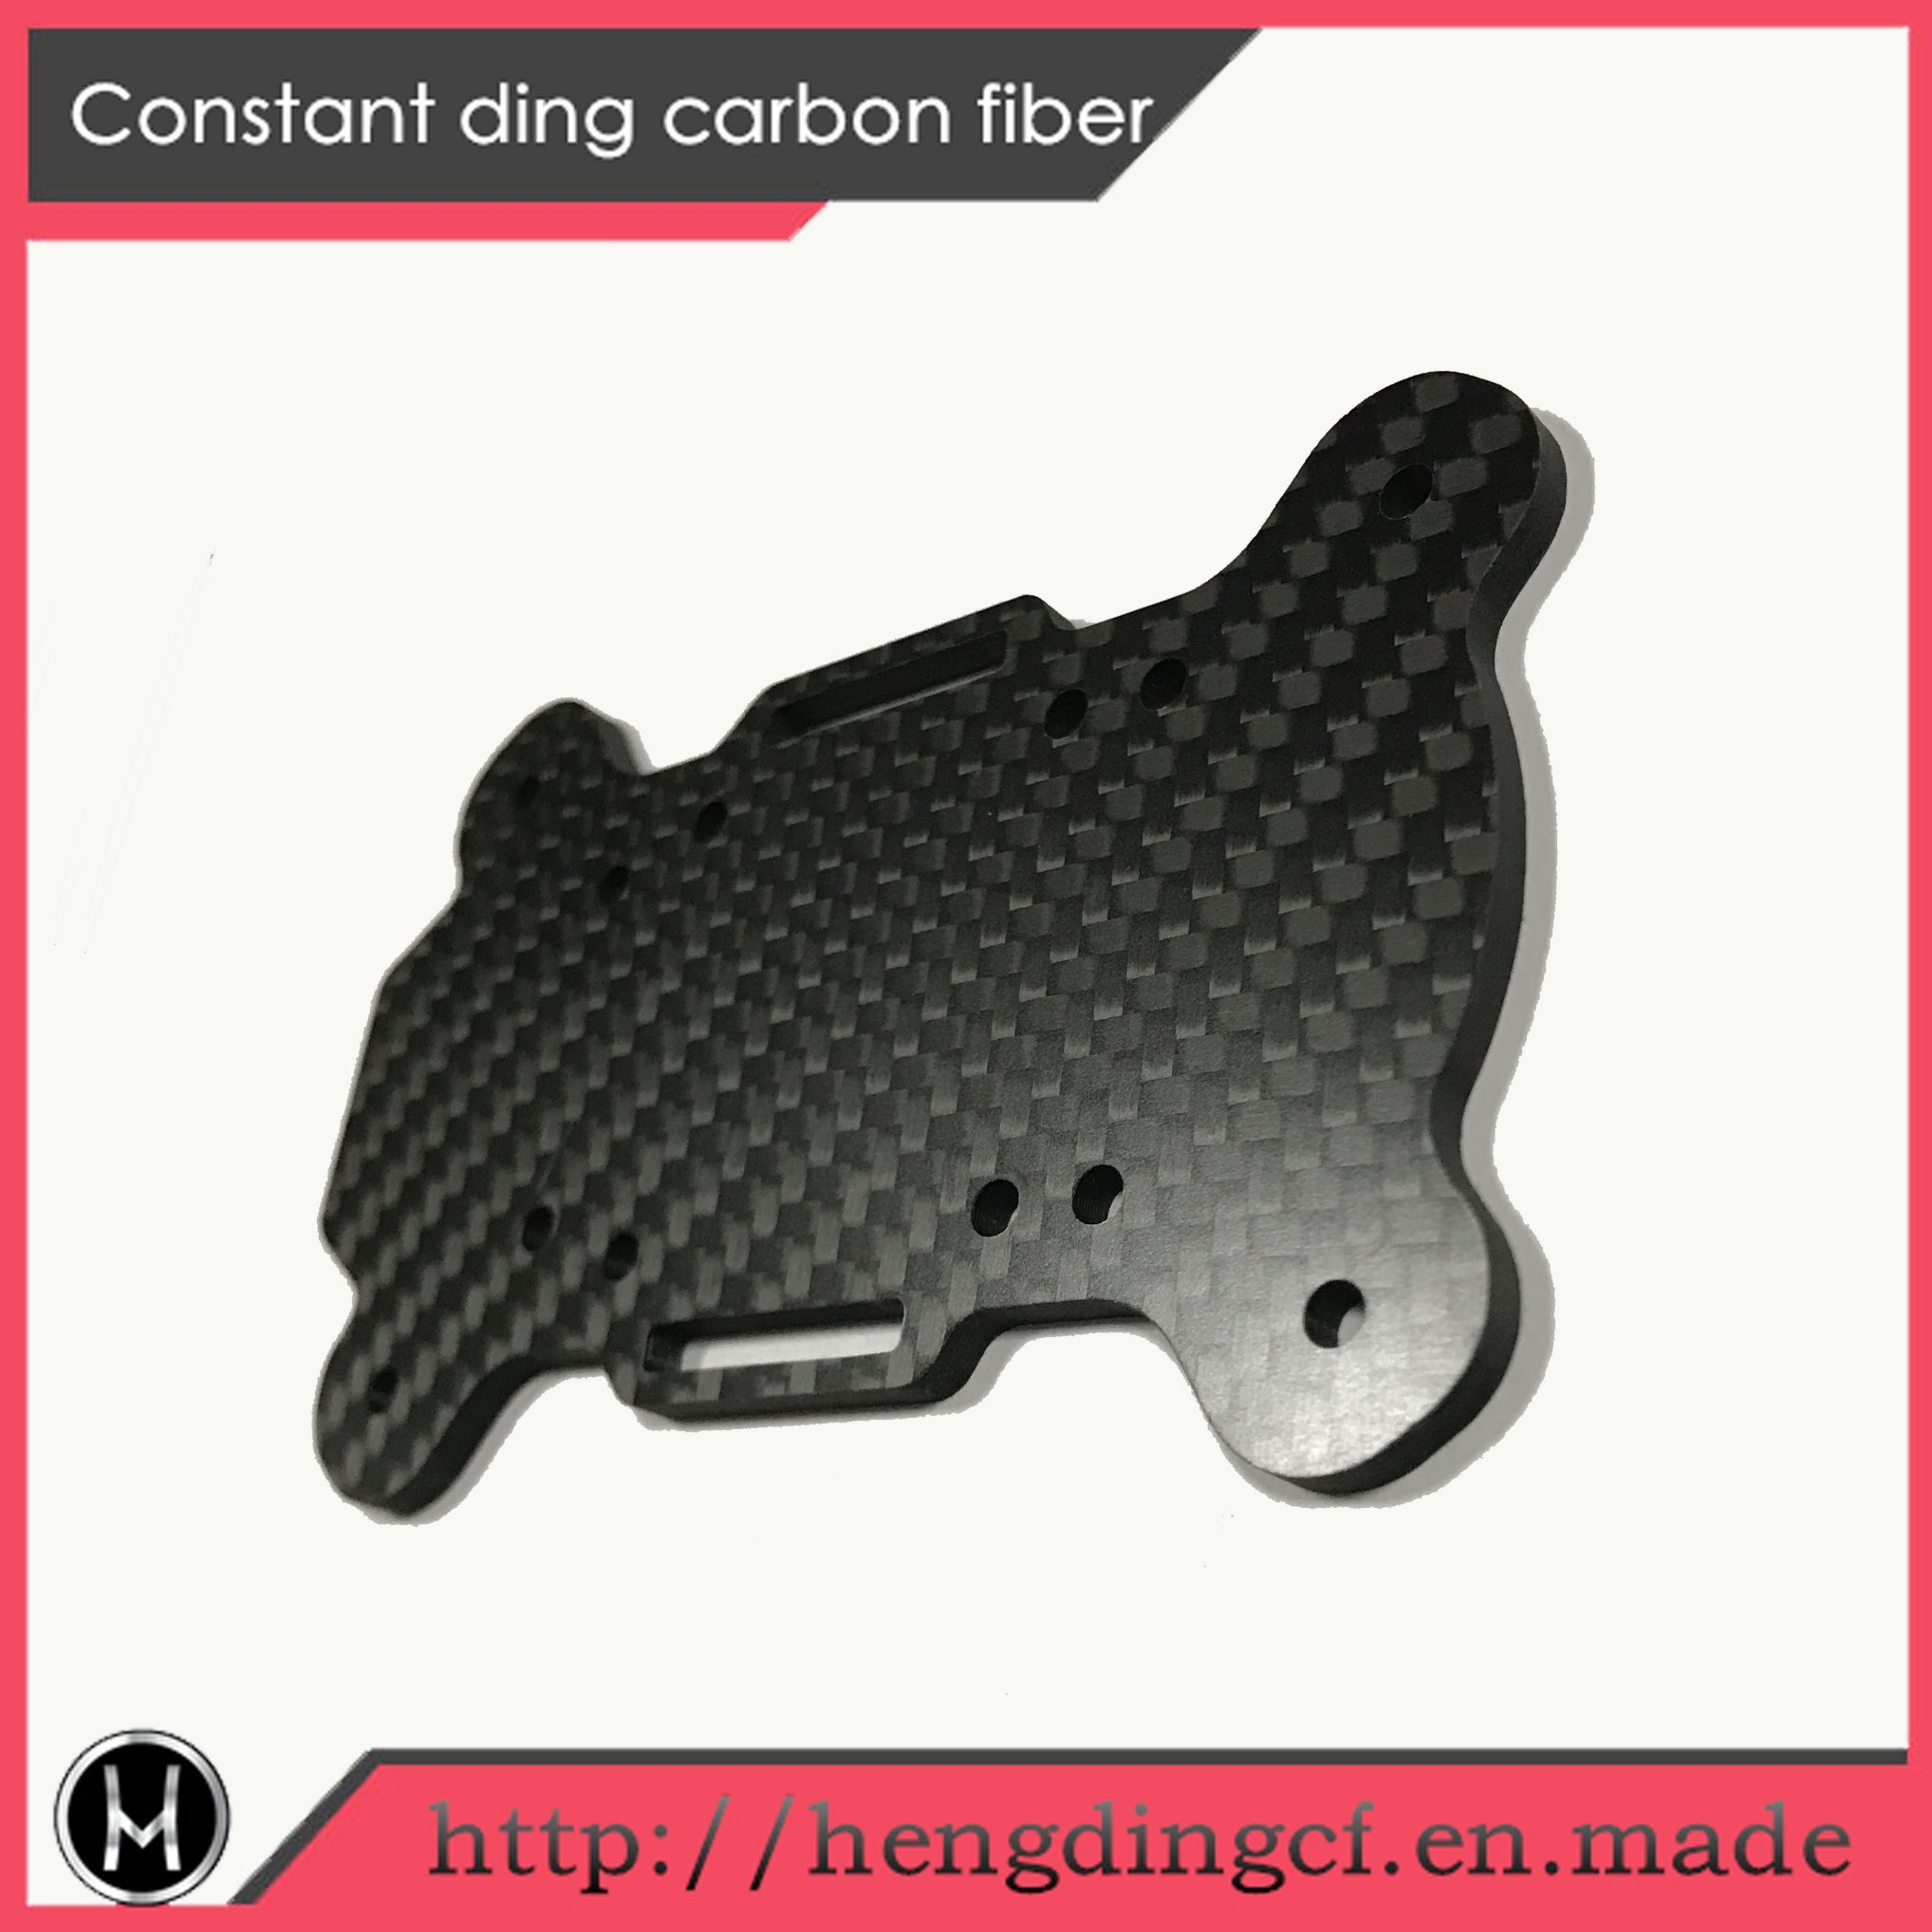 Carbon Fiber Plate for Uav